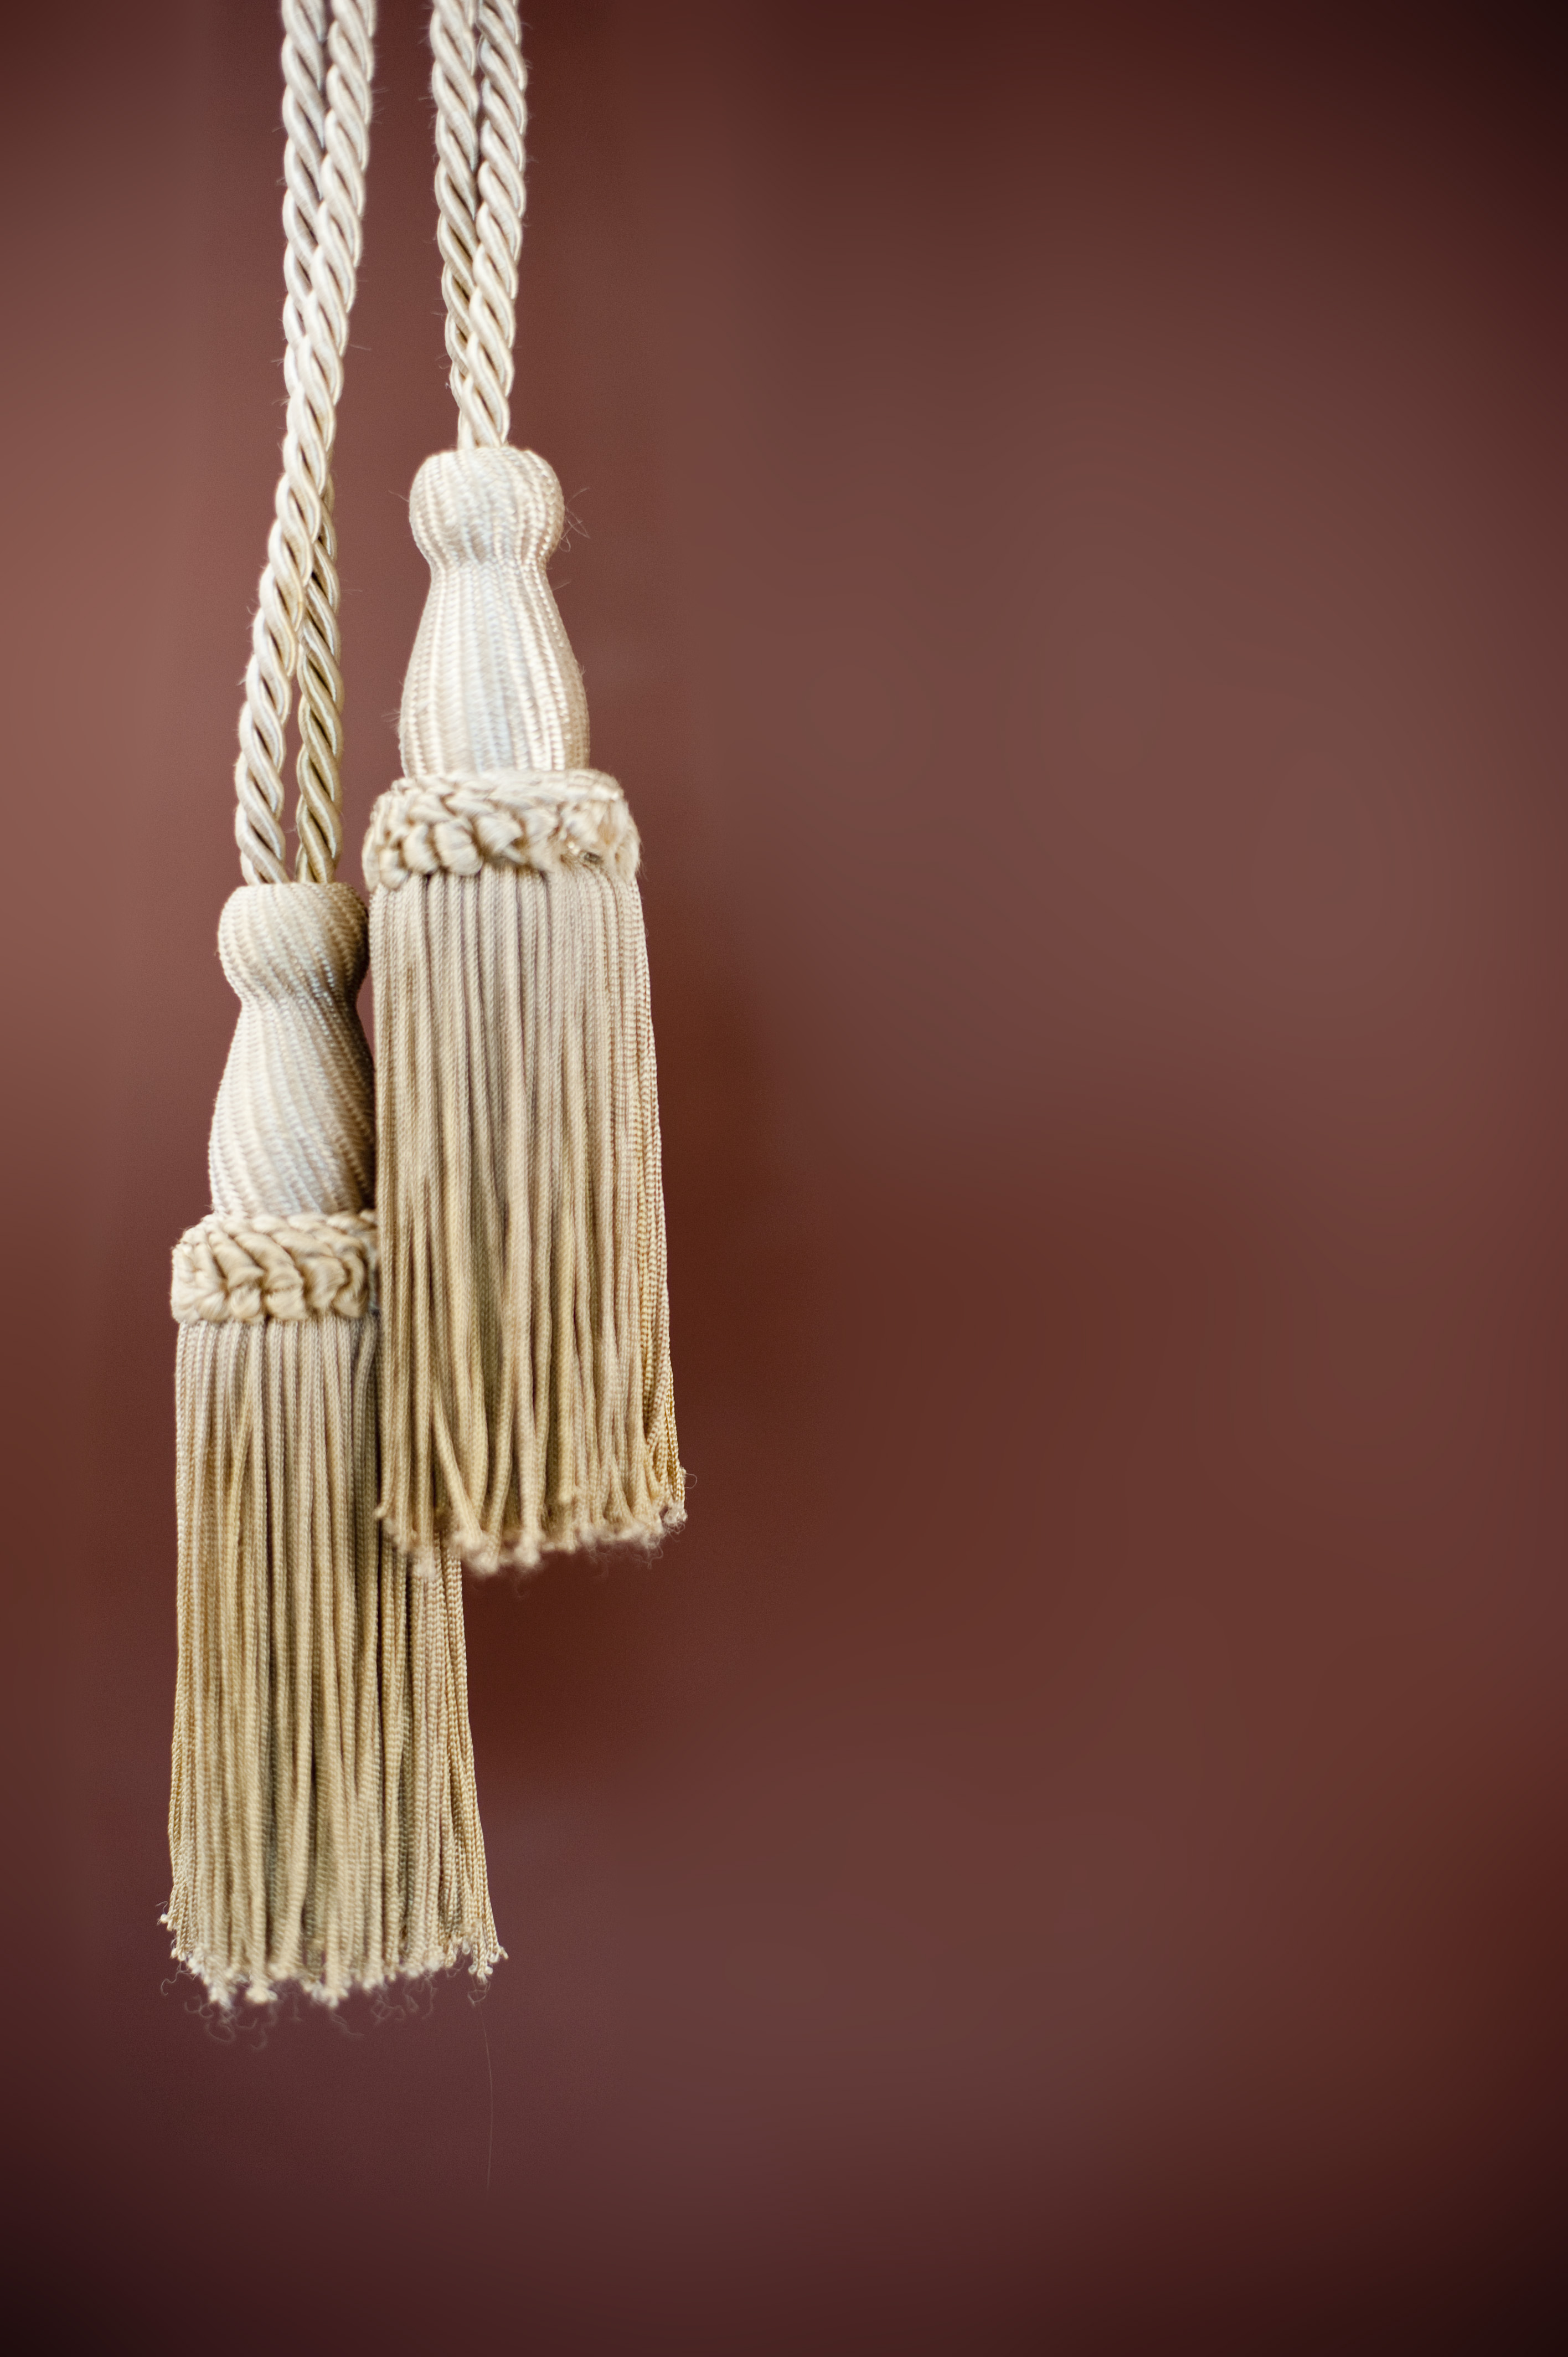 ornate gld coloured curtain tassels on a brown background